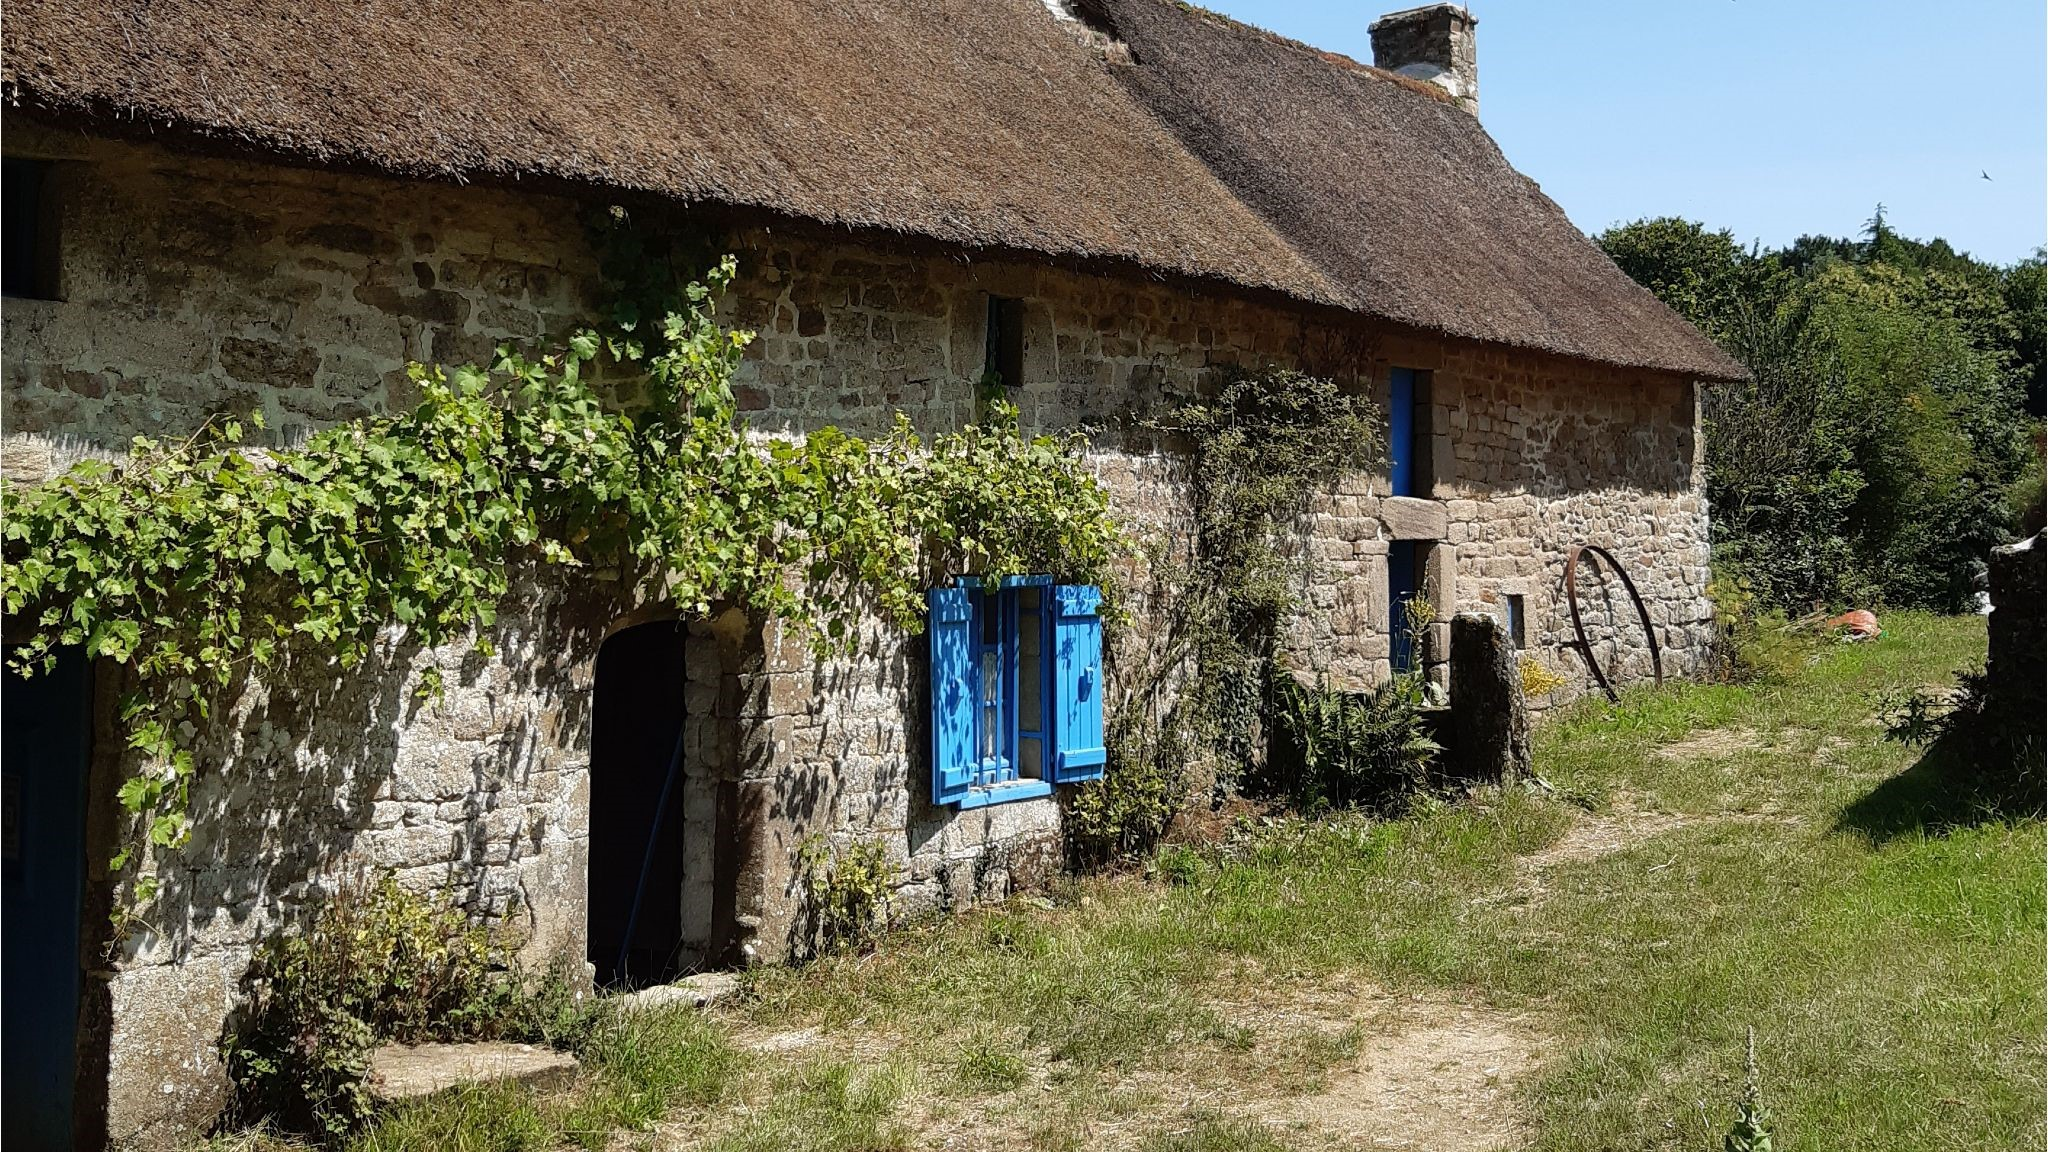 The countryside of Brittany with a French cottage stone front farmhouse with blue shutters.